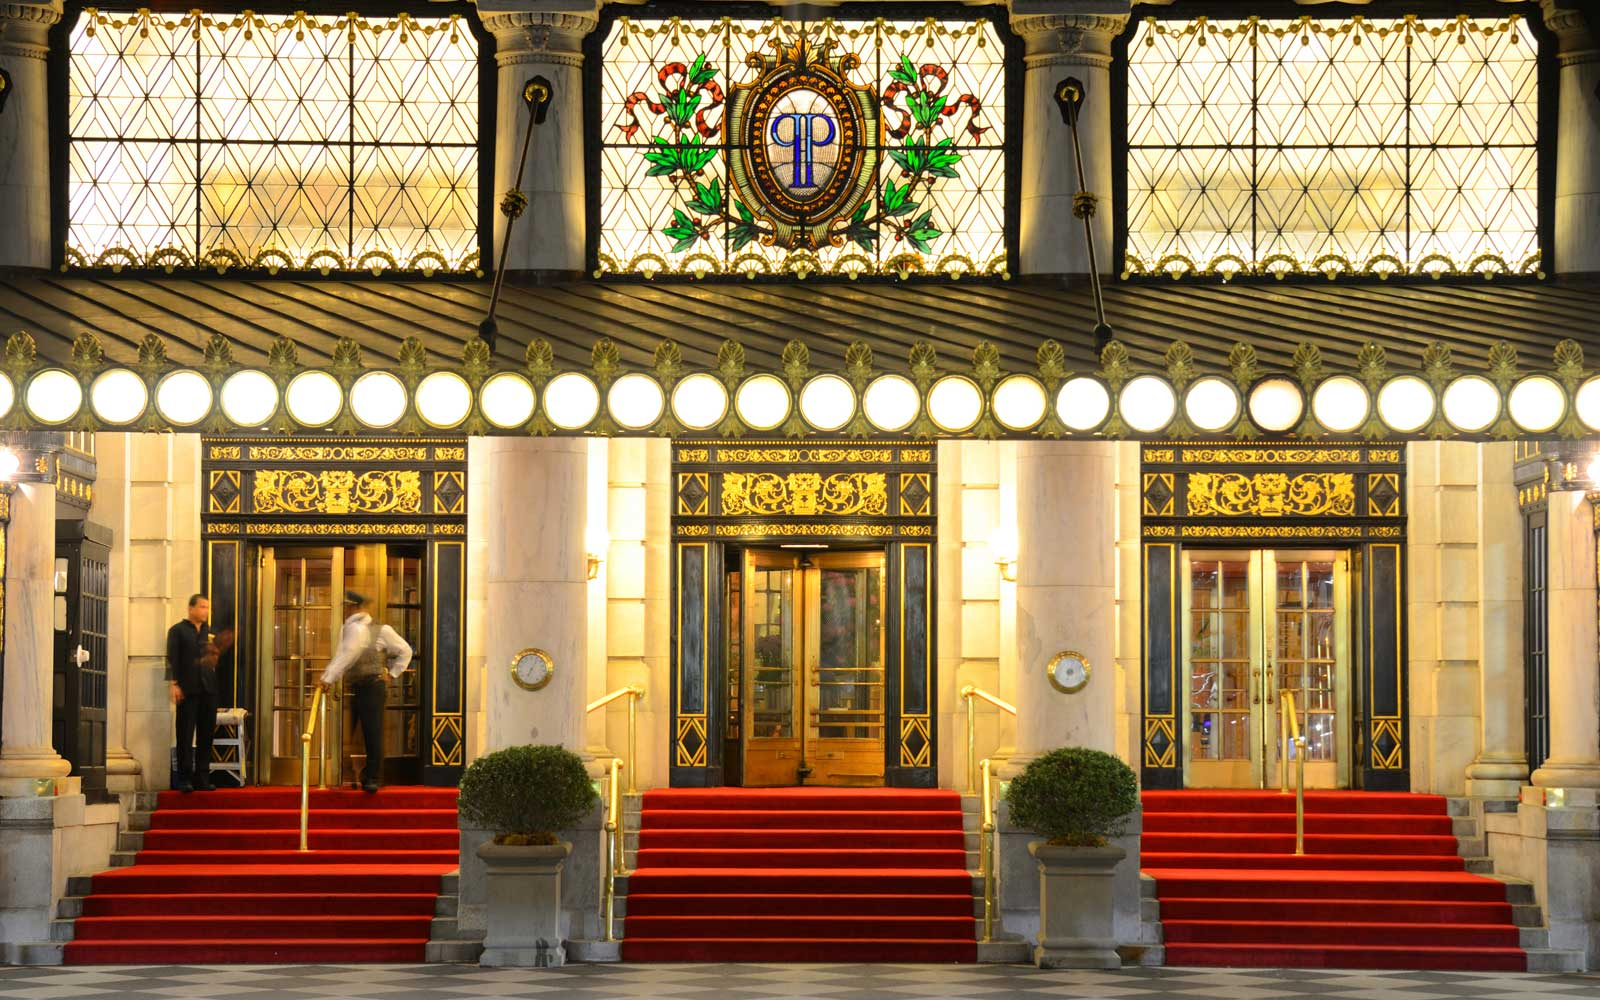 The Plaza Hotel exterior